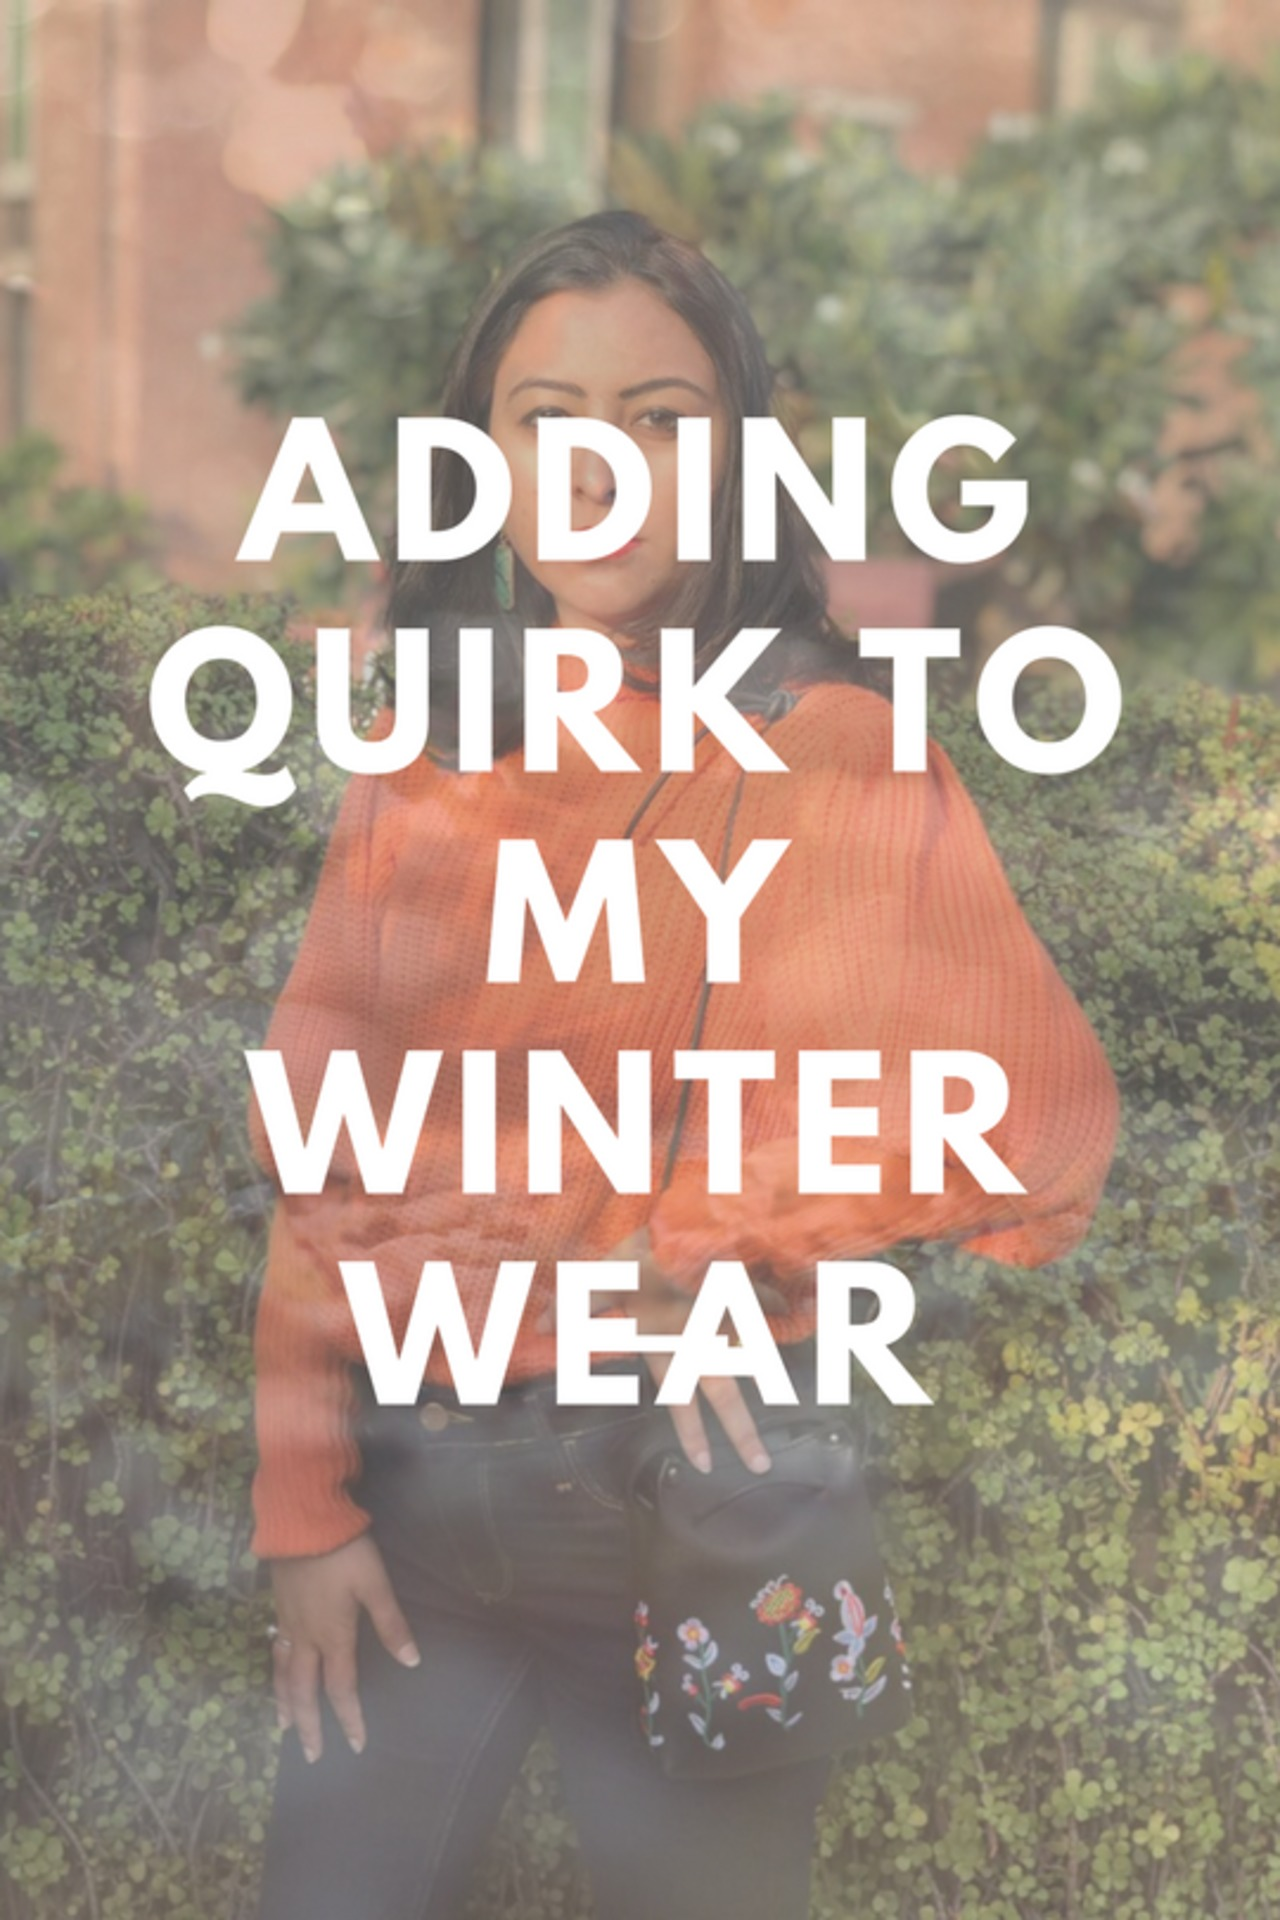 Adding Quirk to My Winter Wear image